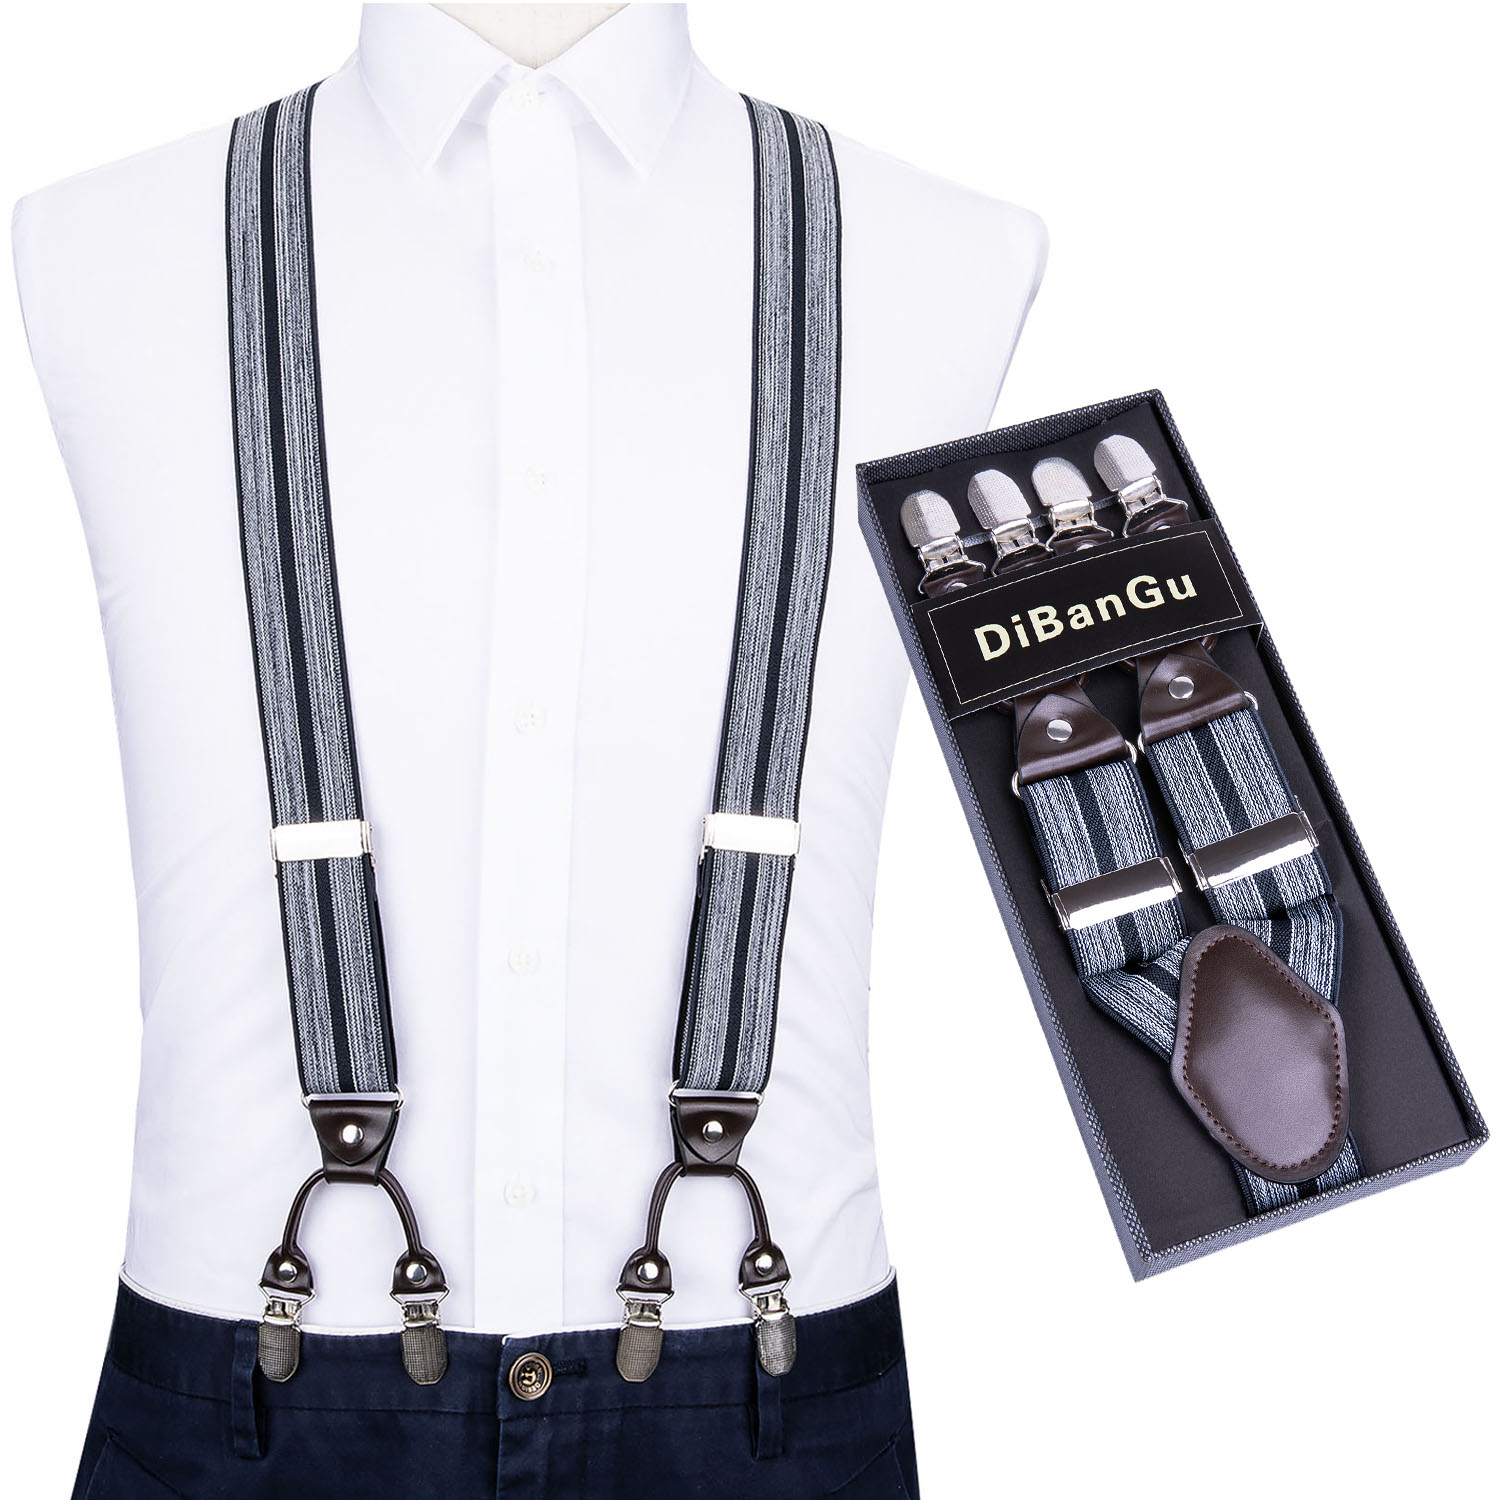 Fashion Suspenders Genuine Leather 6 Clips Brace Male Vintage Casual Wedding Party Trousers Men Navy Elastic Suspender DiBanGu